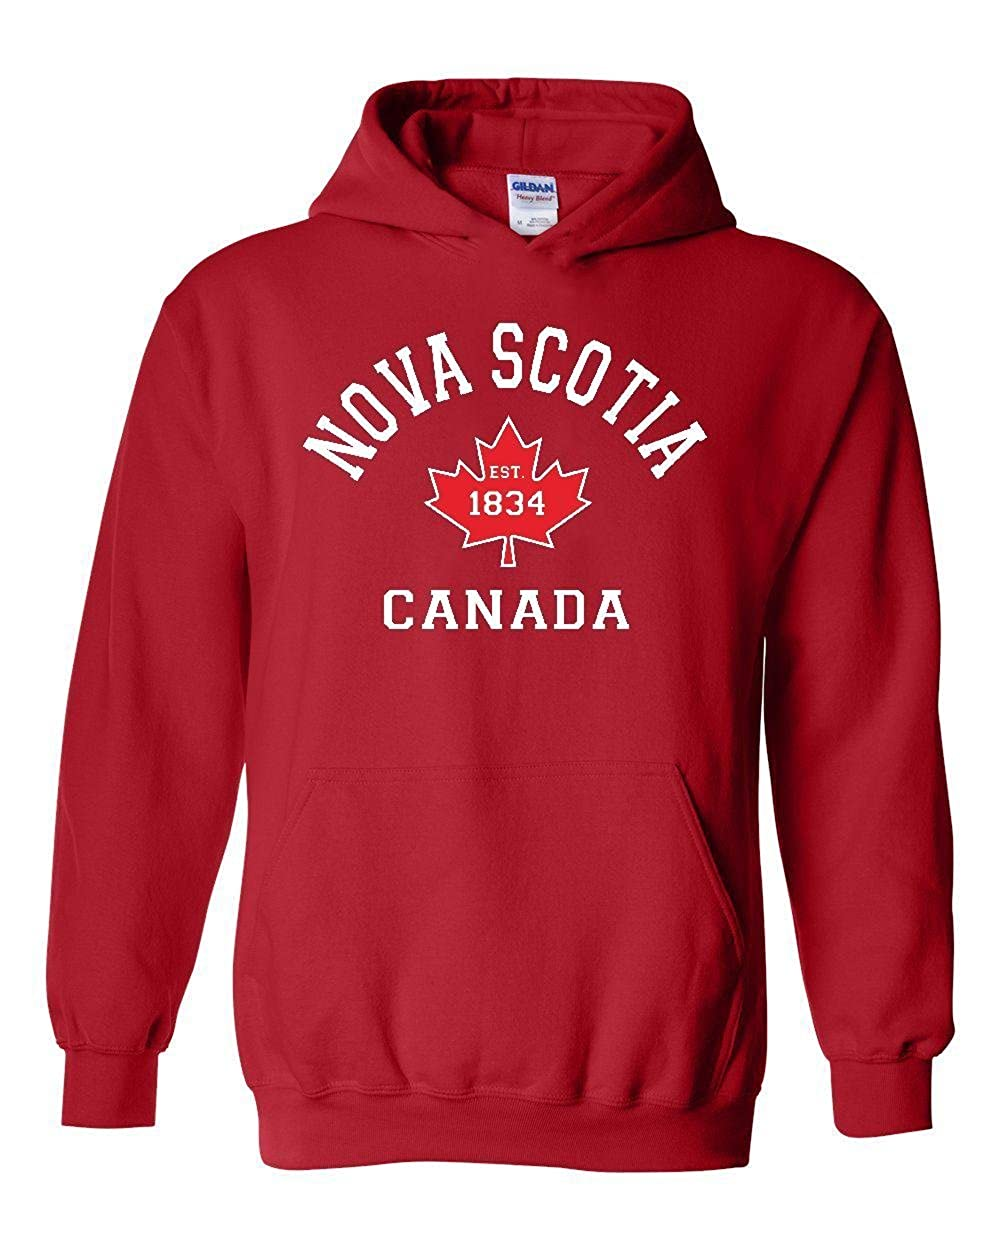 Nova Scotia Canada Maple Leaf Unisex Hoodies Sweater 18500_EO3419_L084017